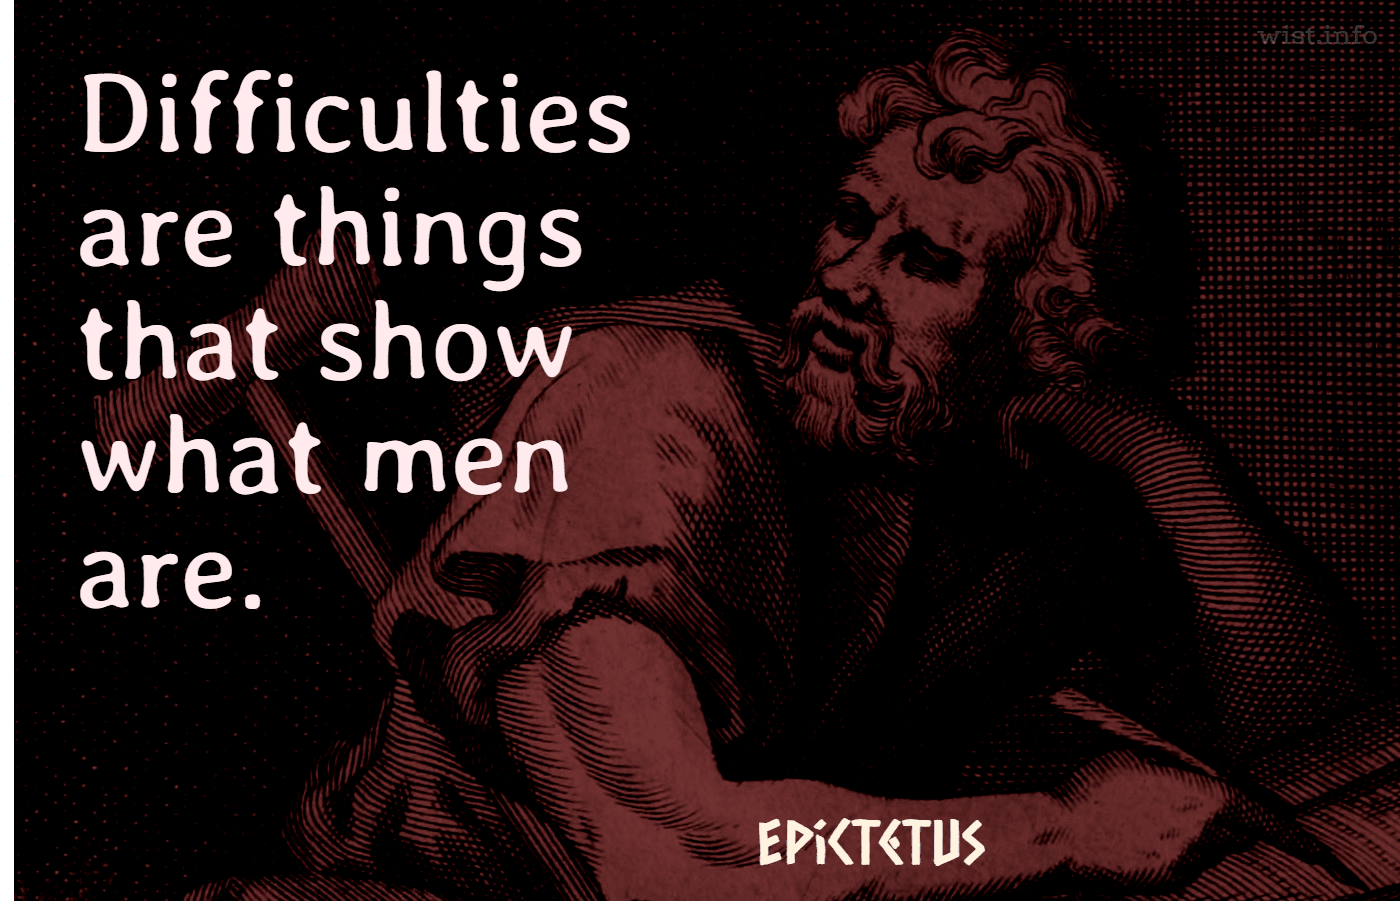 epictetus-difficulties-show-what-men-are-wist_info-quote